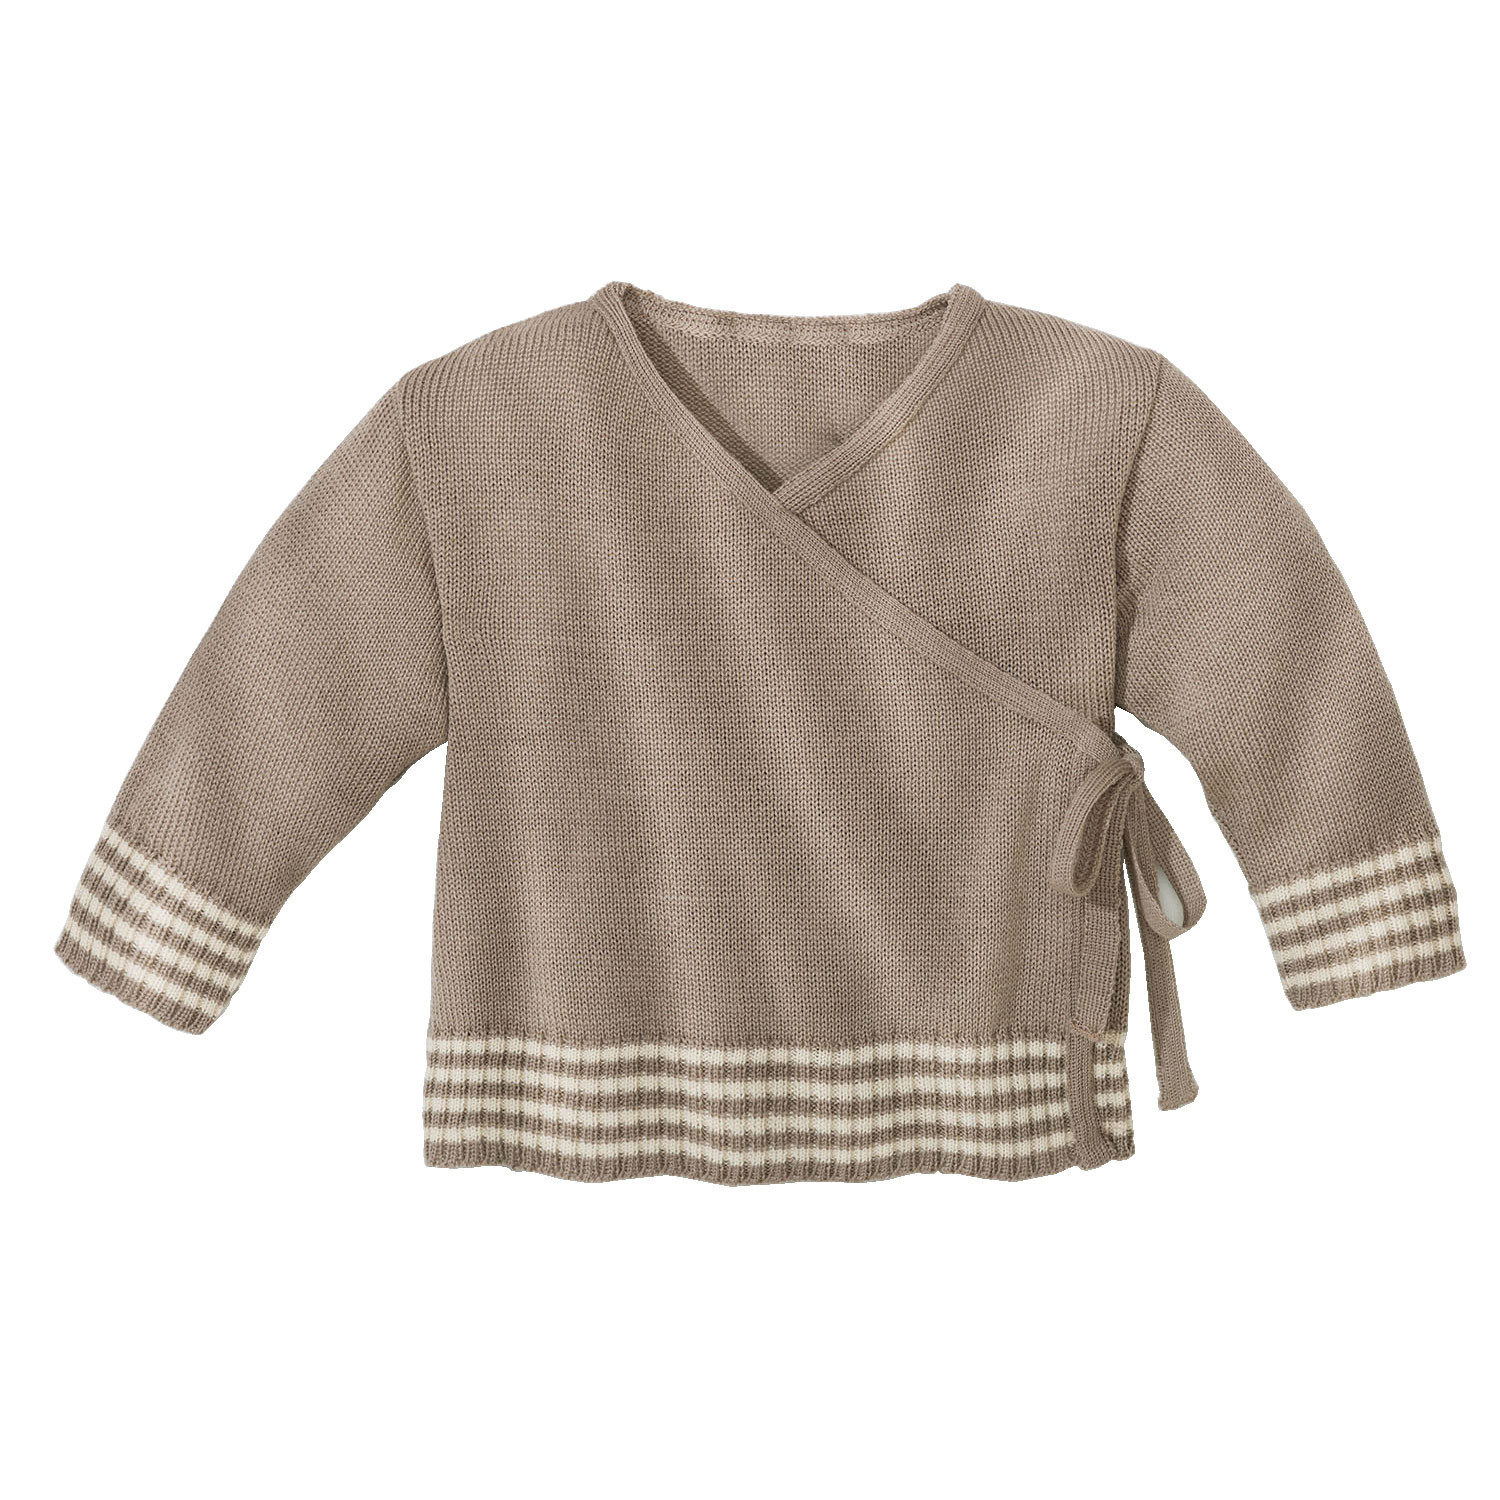 Wollstrick-Wickelpullover, taupe